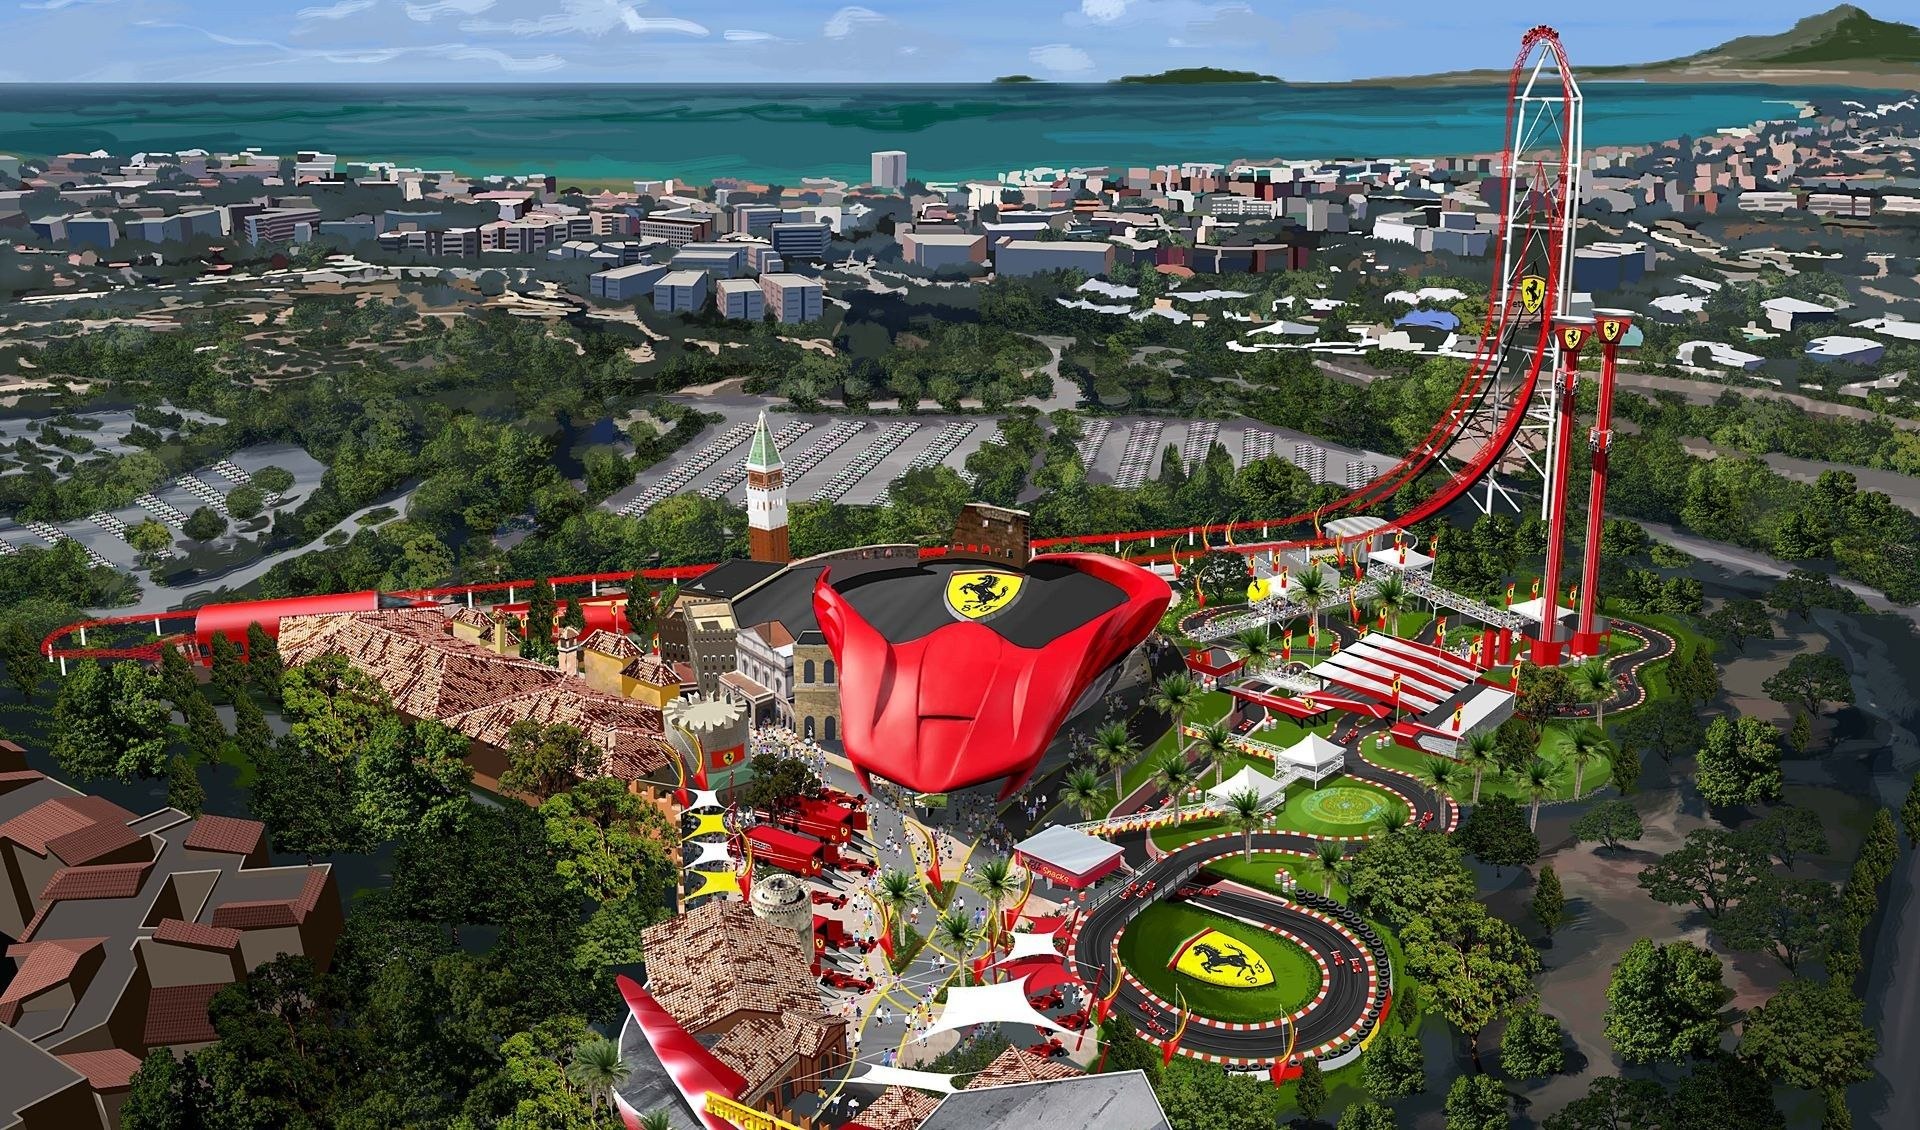 Spain's New Ferrari Land Is Disney World for Car Fanatics